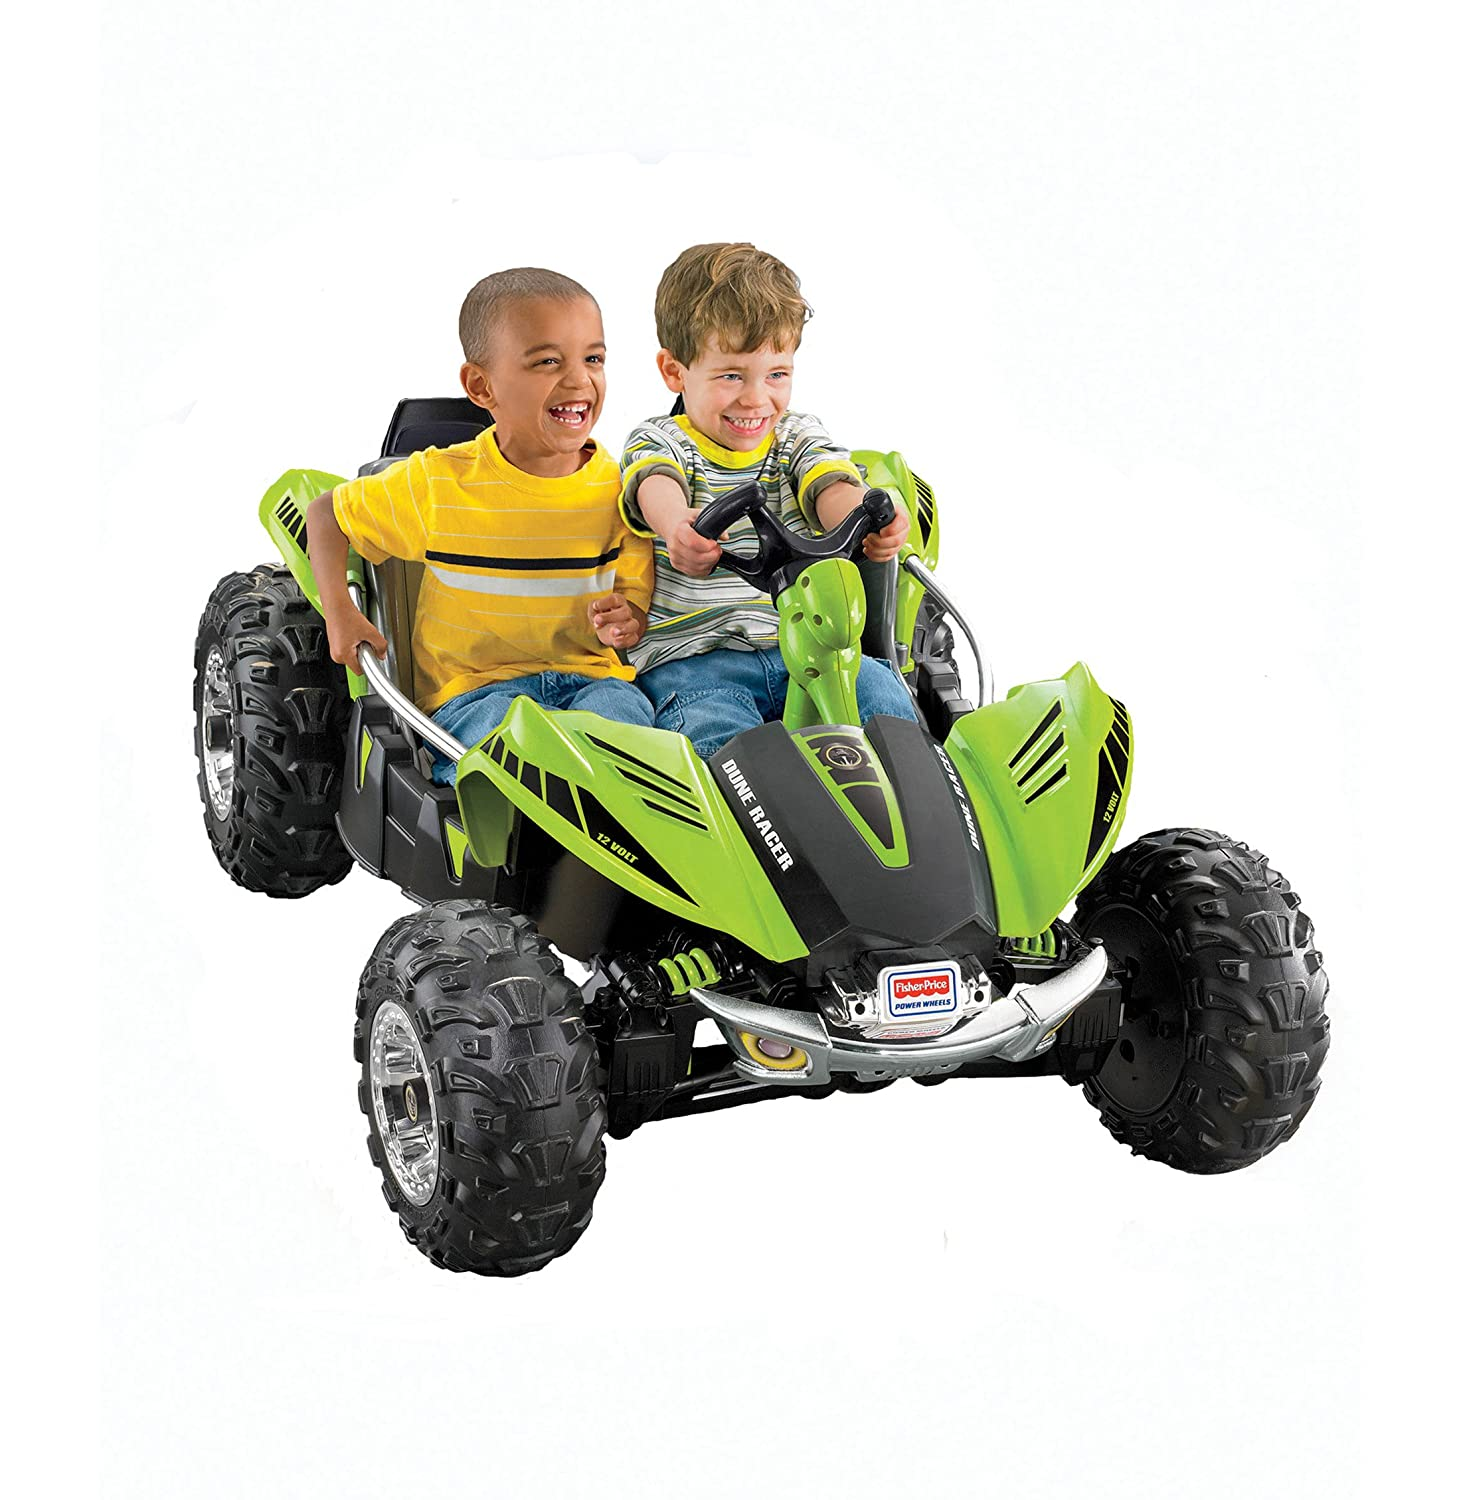 Power Wheels Dune Racer- Power wheels dune racer